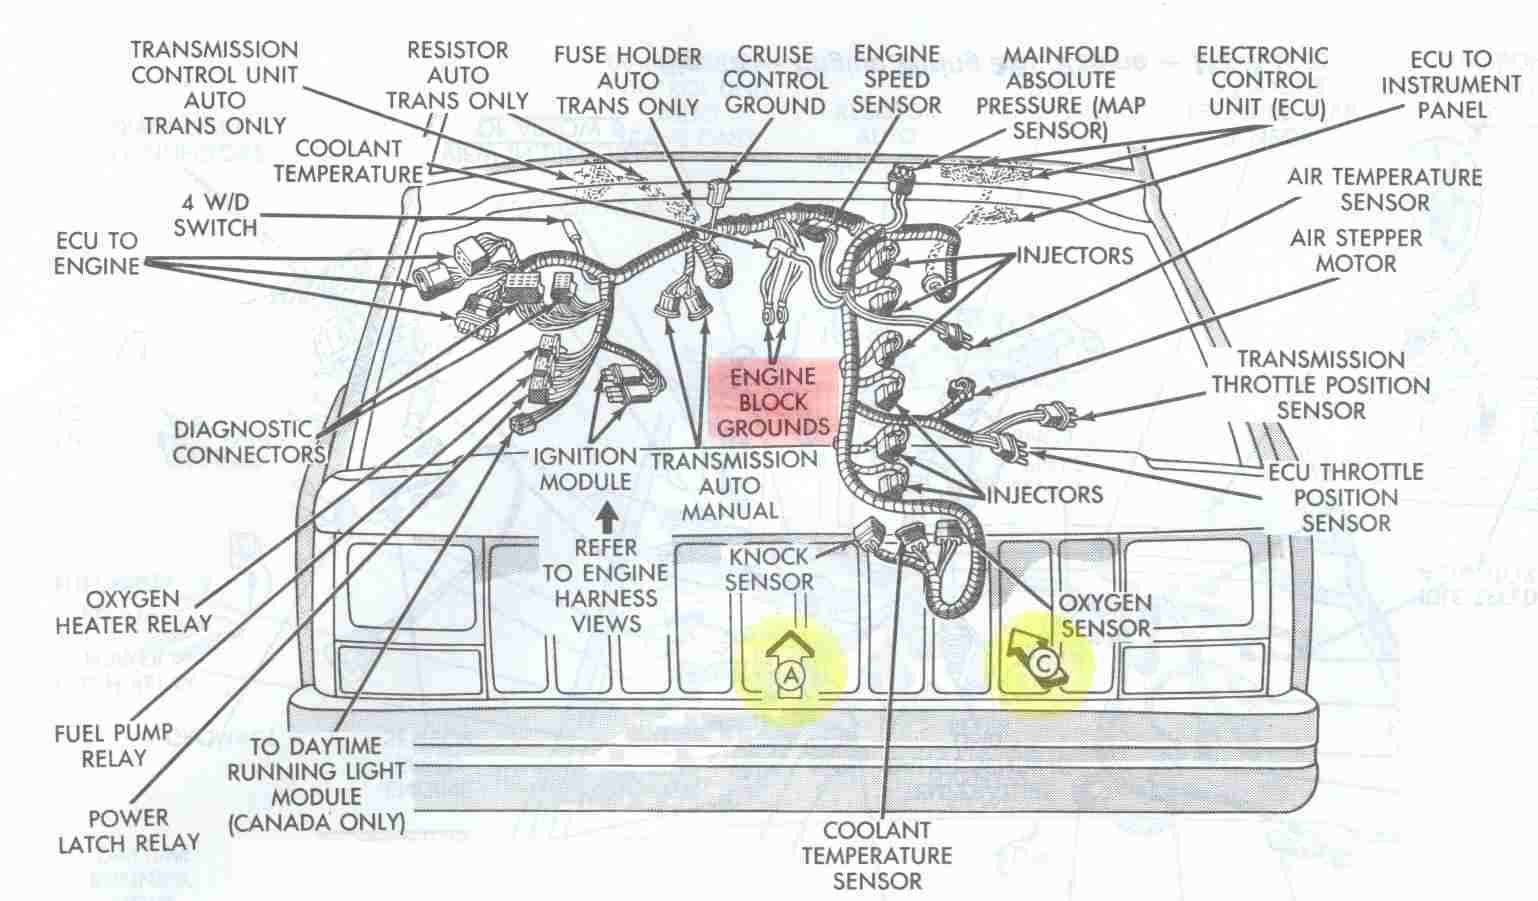 small resolution of main fuse box cherokee xj wiring libraryengine bay schematic showing major electrical ground points for 4